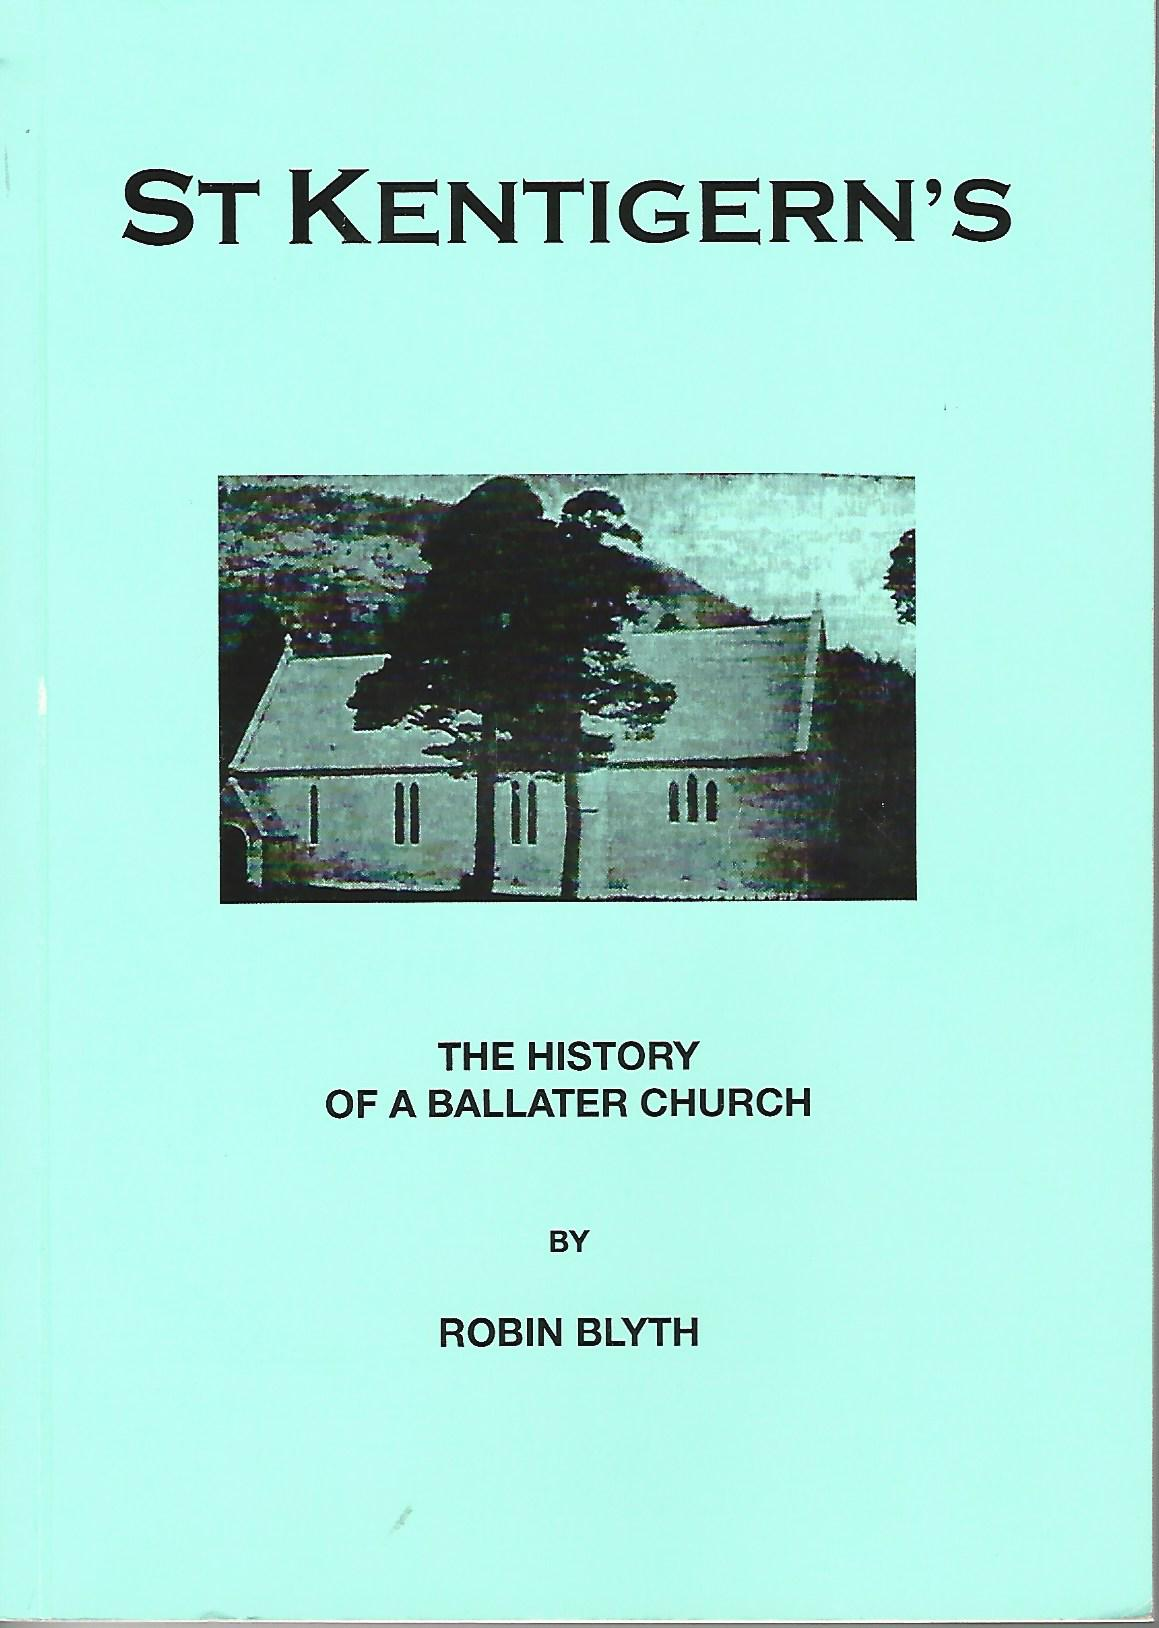 Image for St Kentigern's: the History of a Ballater Church.